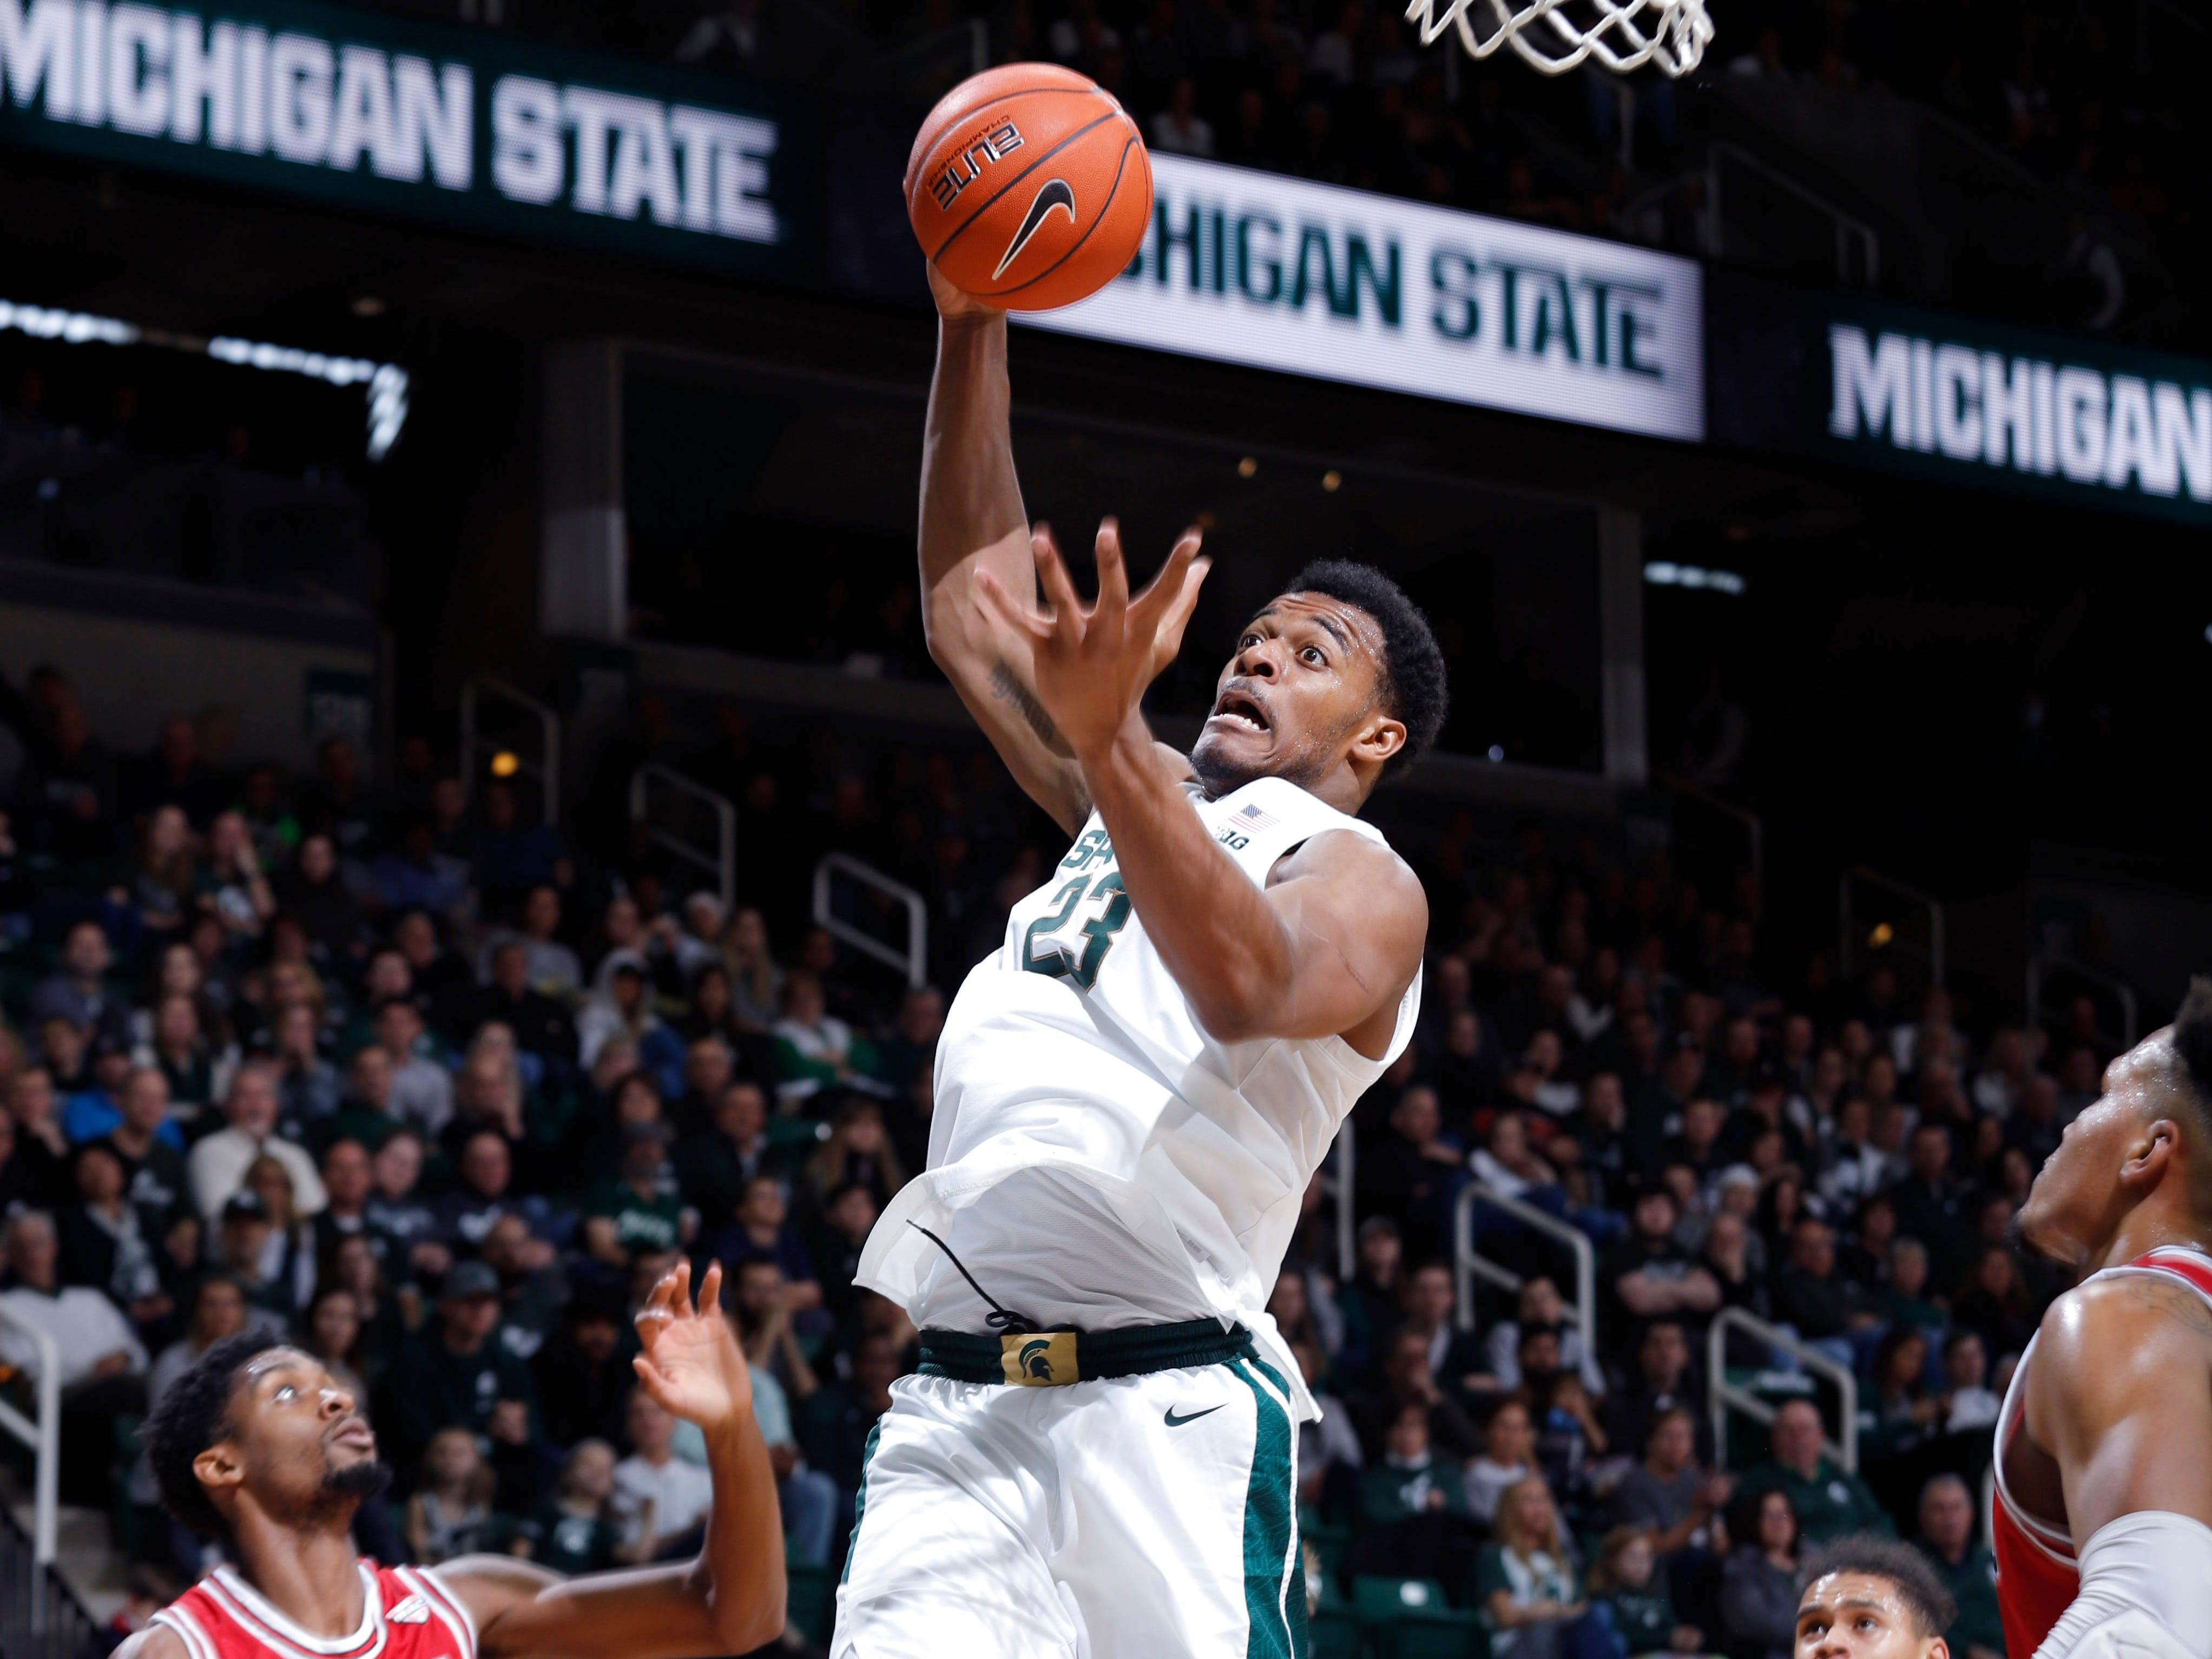 Michigan State's Xavier Tillman rips down a rebound against Northern Illinois, Saturday, Dec. 29, 2018, in East Lansing, Mich.